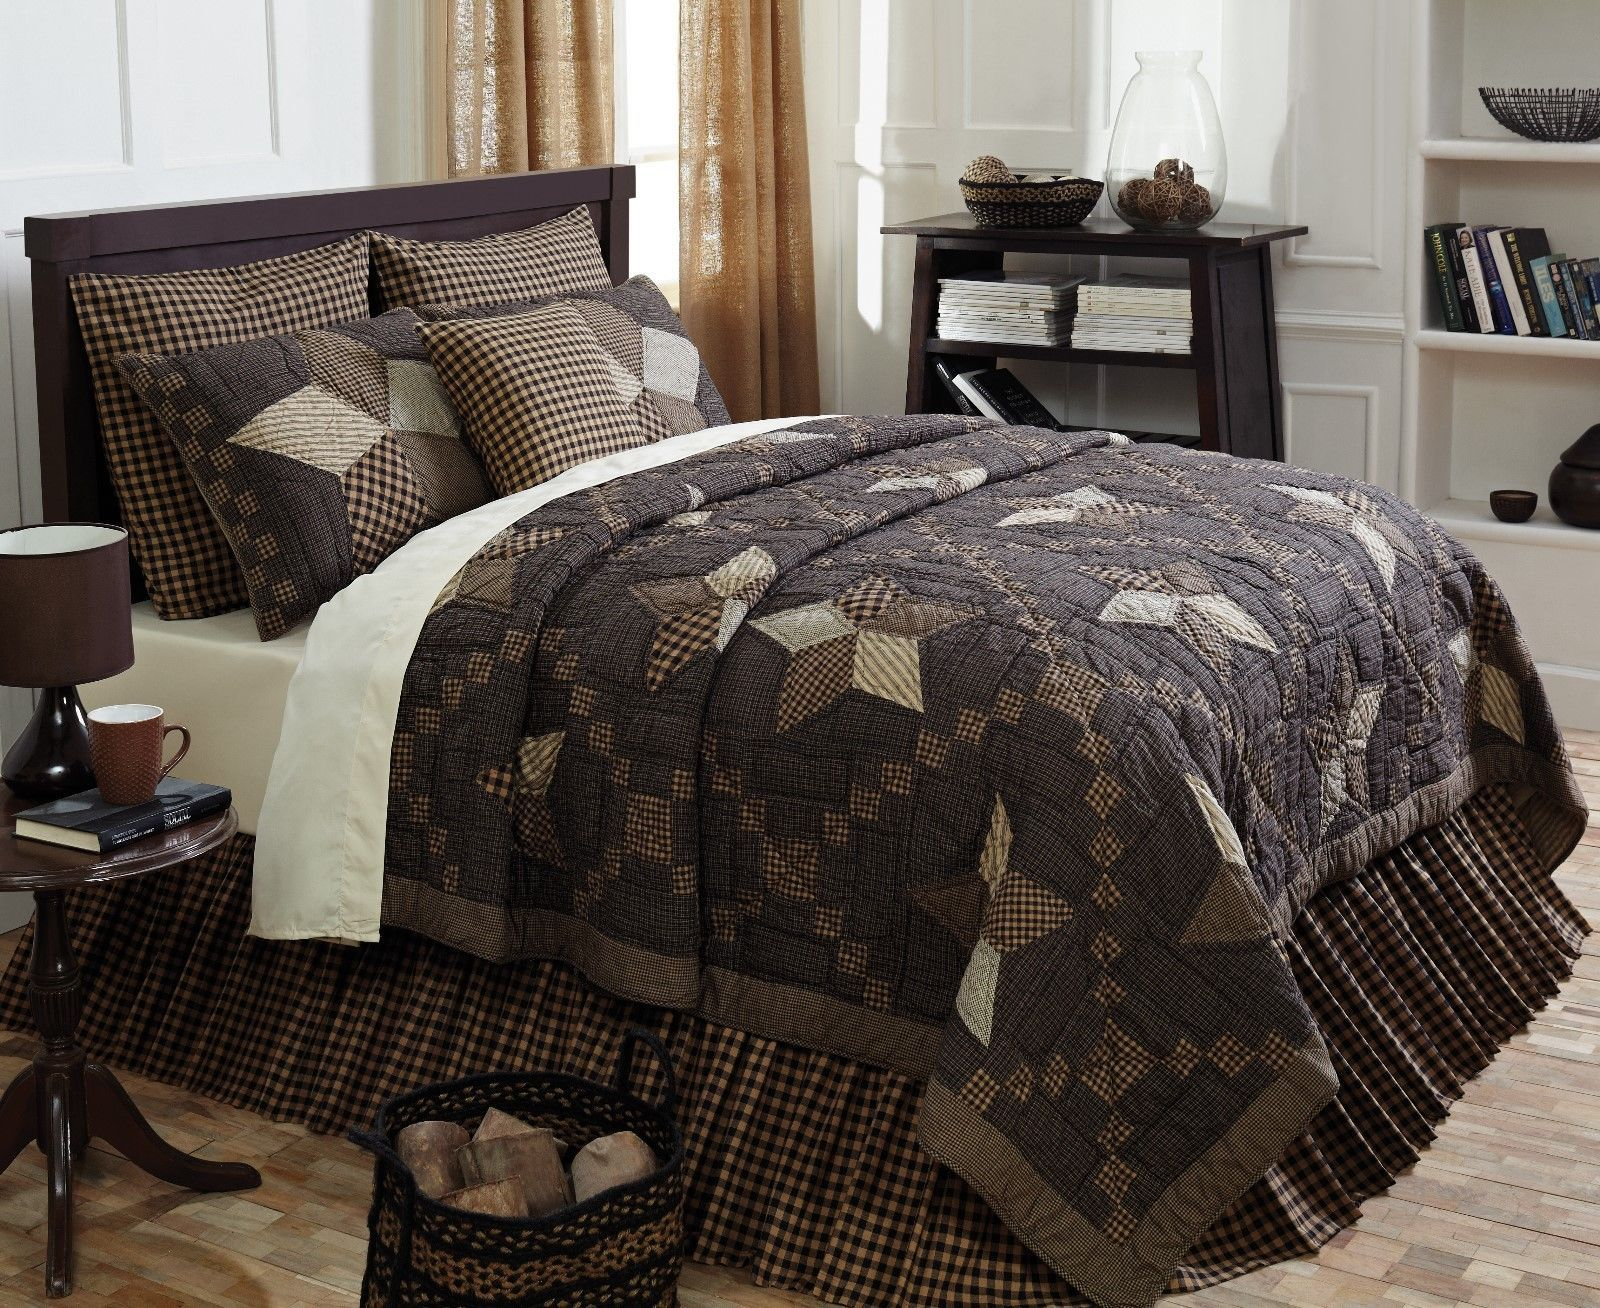 3-pc King - FARMHOUSE STAR Quilt and Shams Set - Black and Tan - VHC Brands